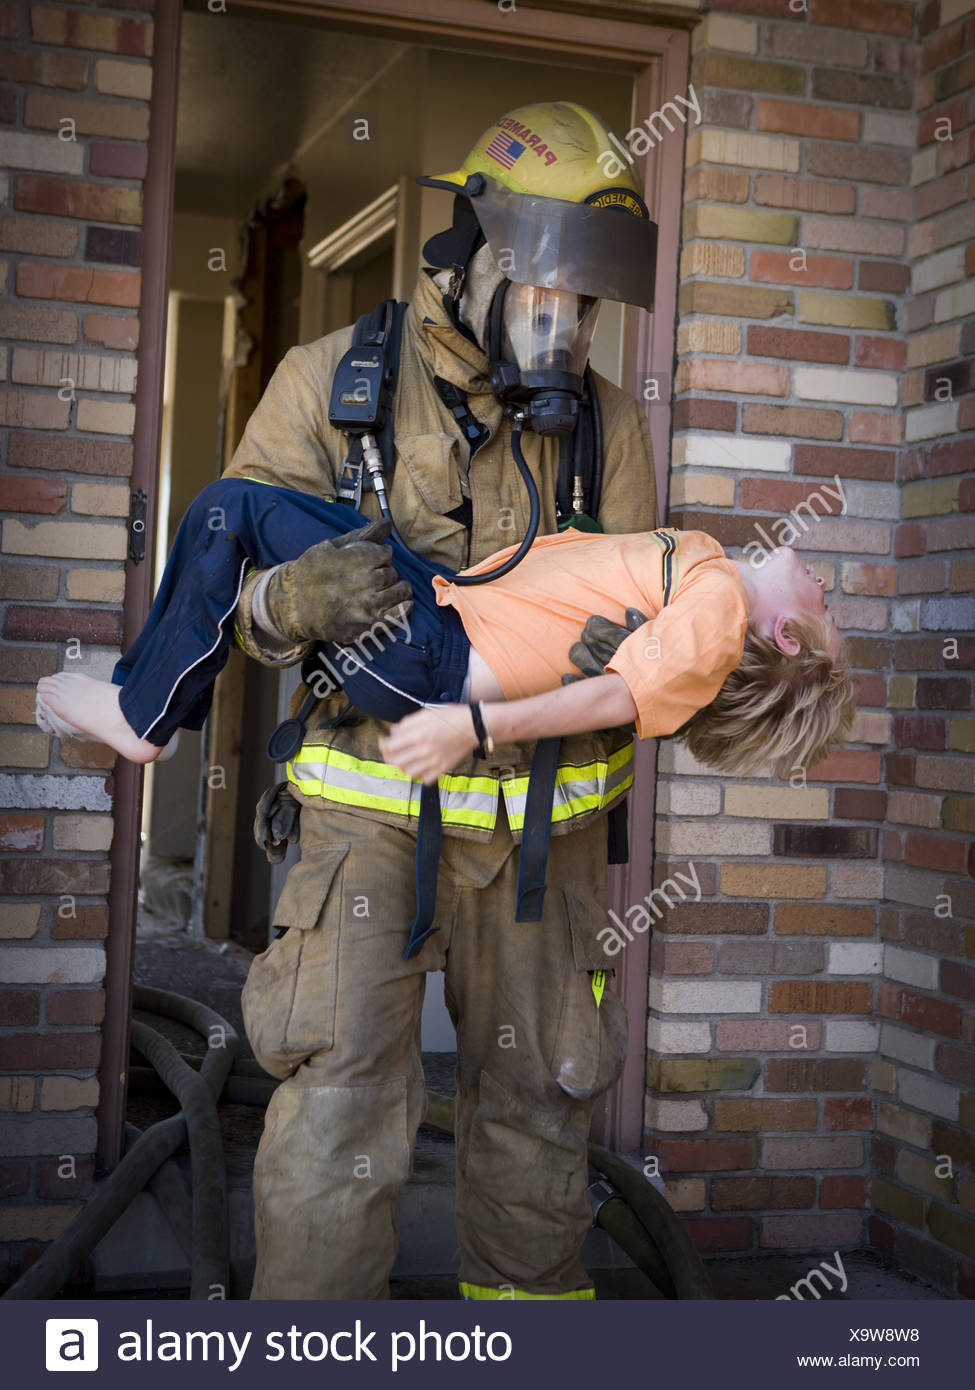 Fire fighter rescuing child - Stock Image